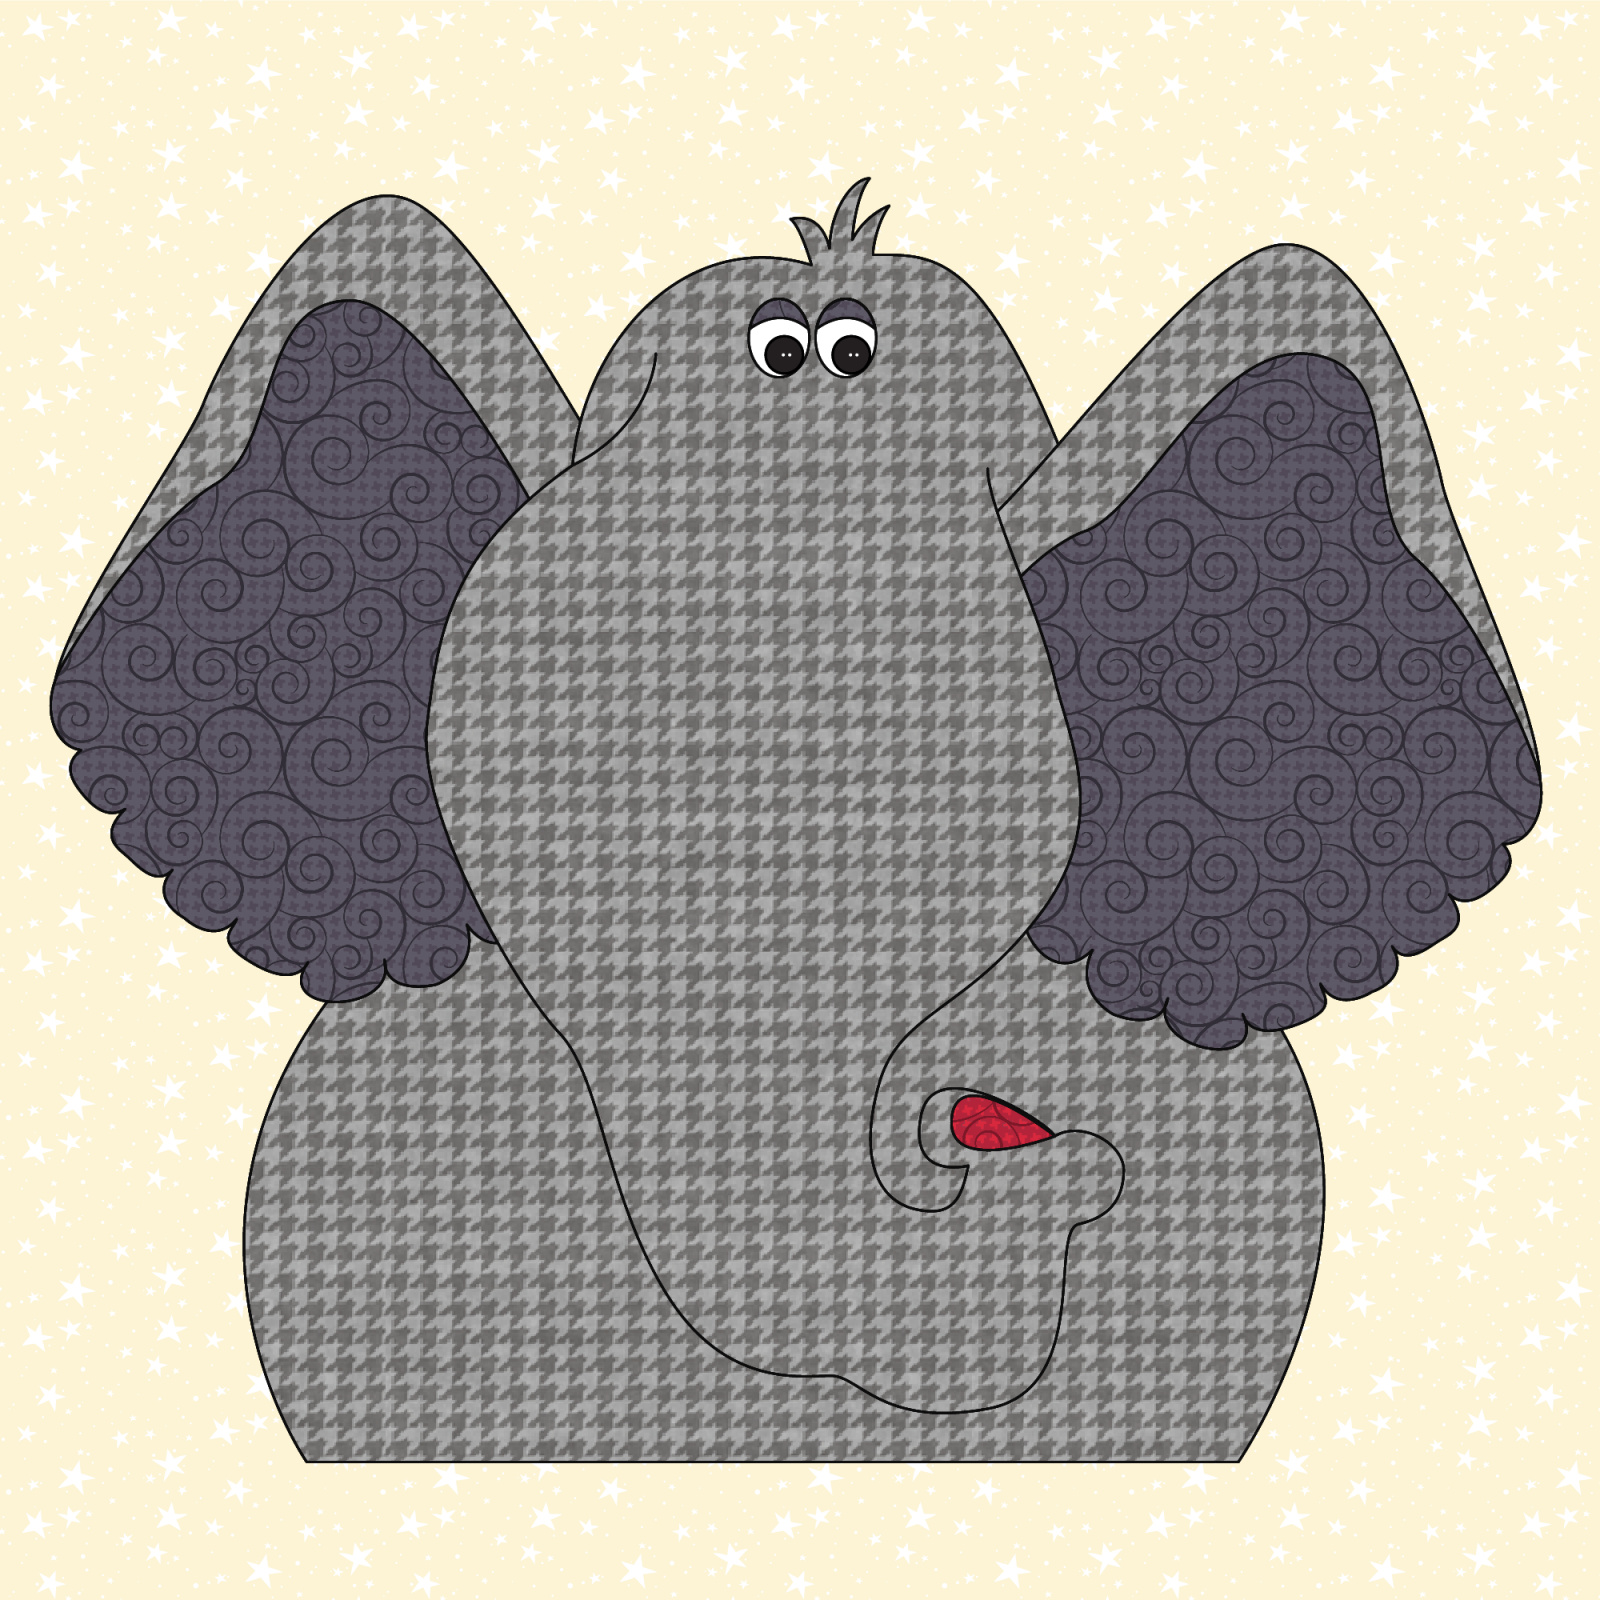 Elephant Precut Prefused Applique Kit